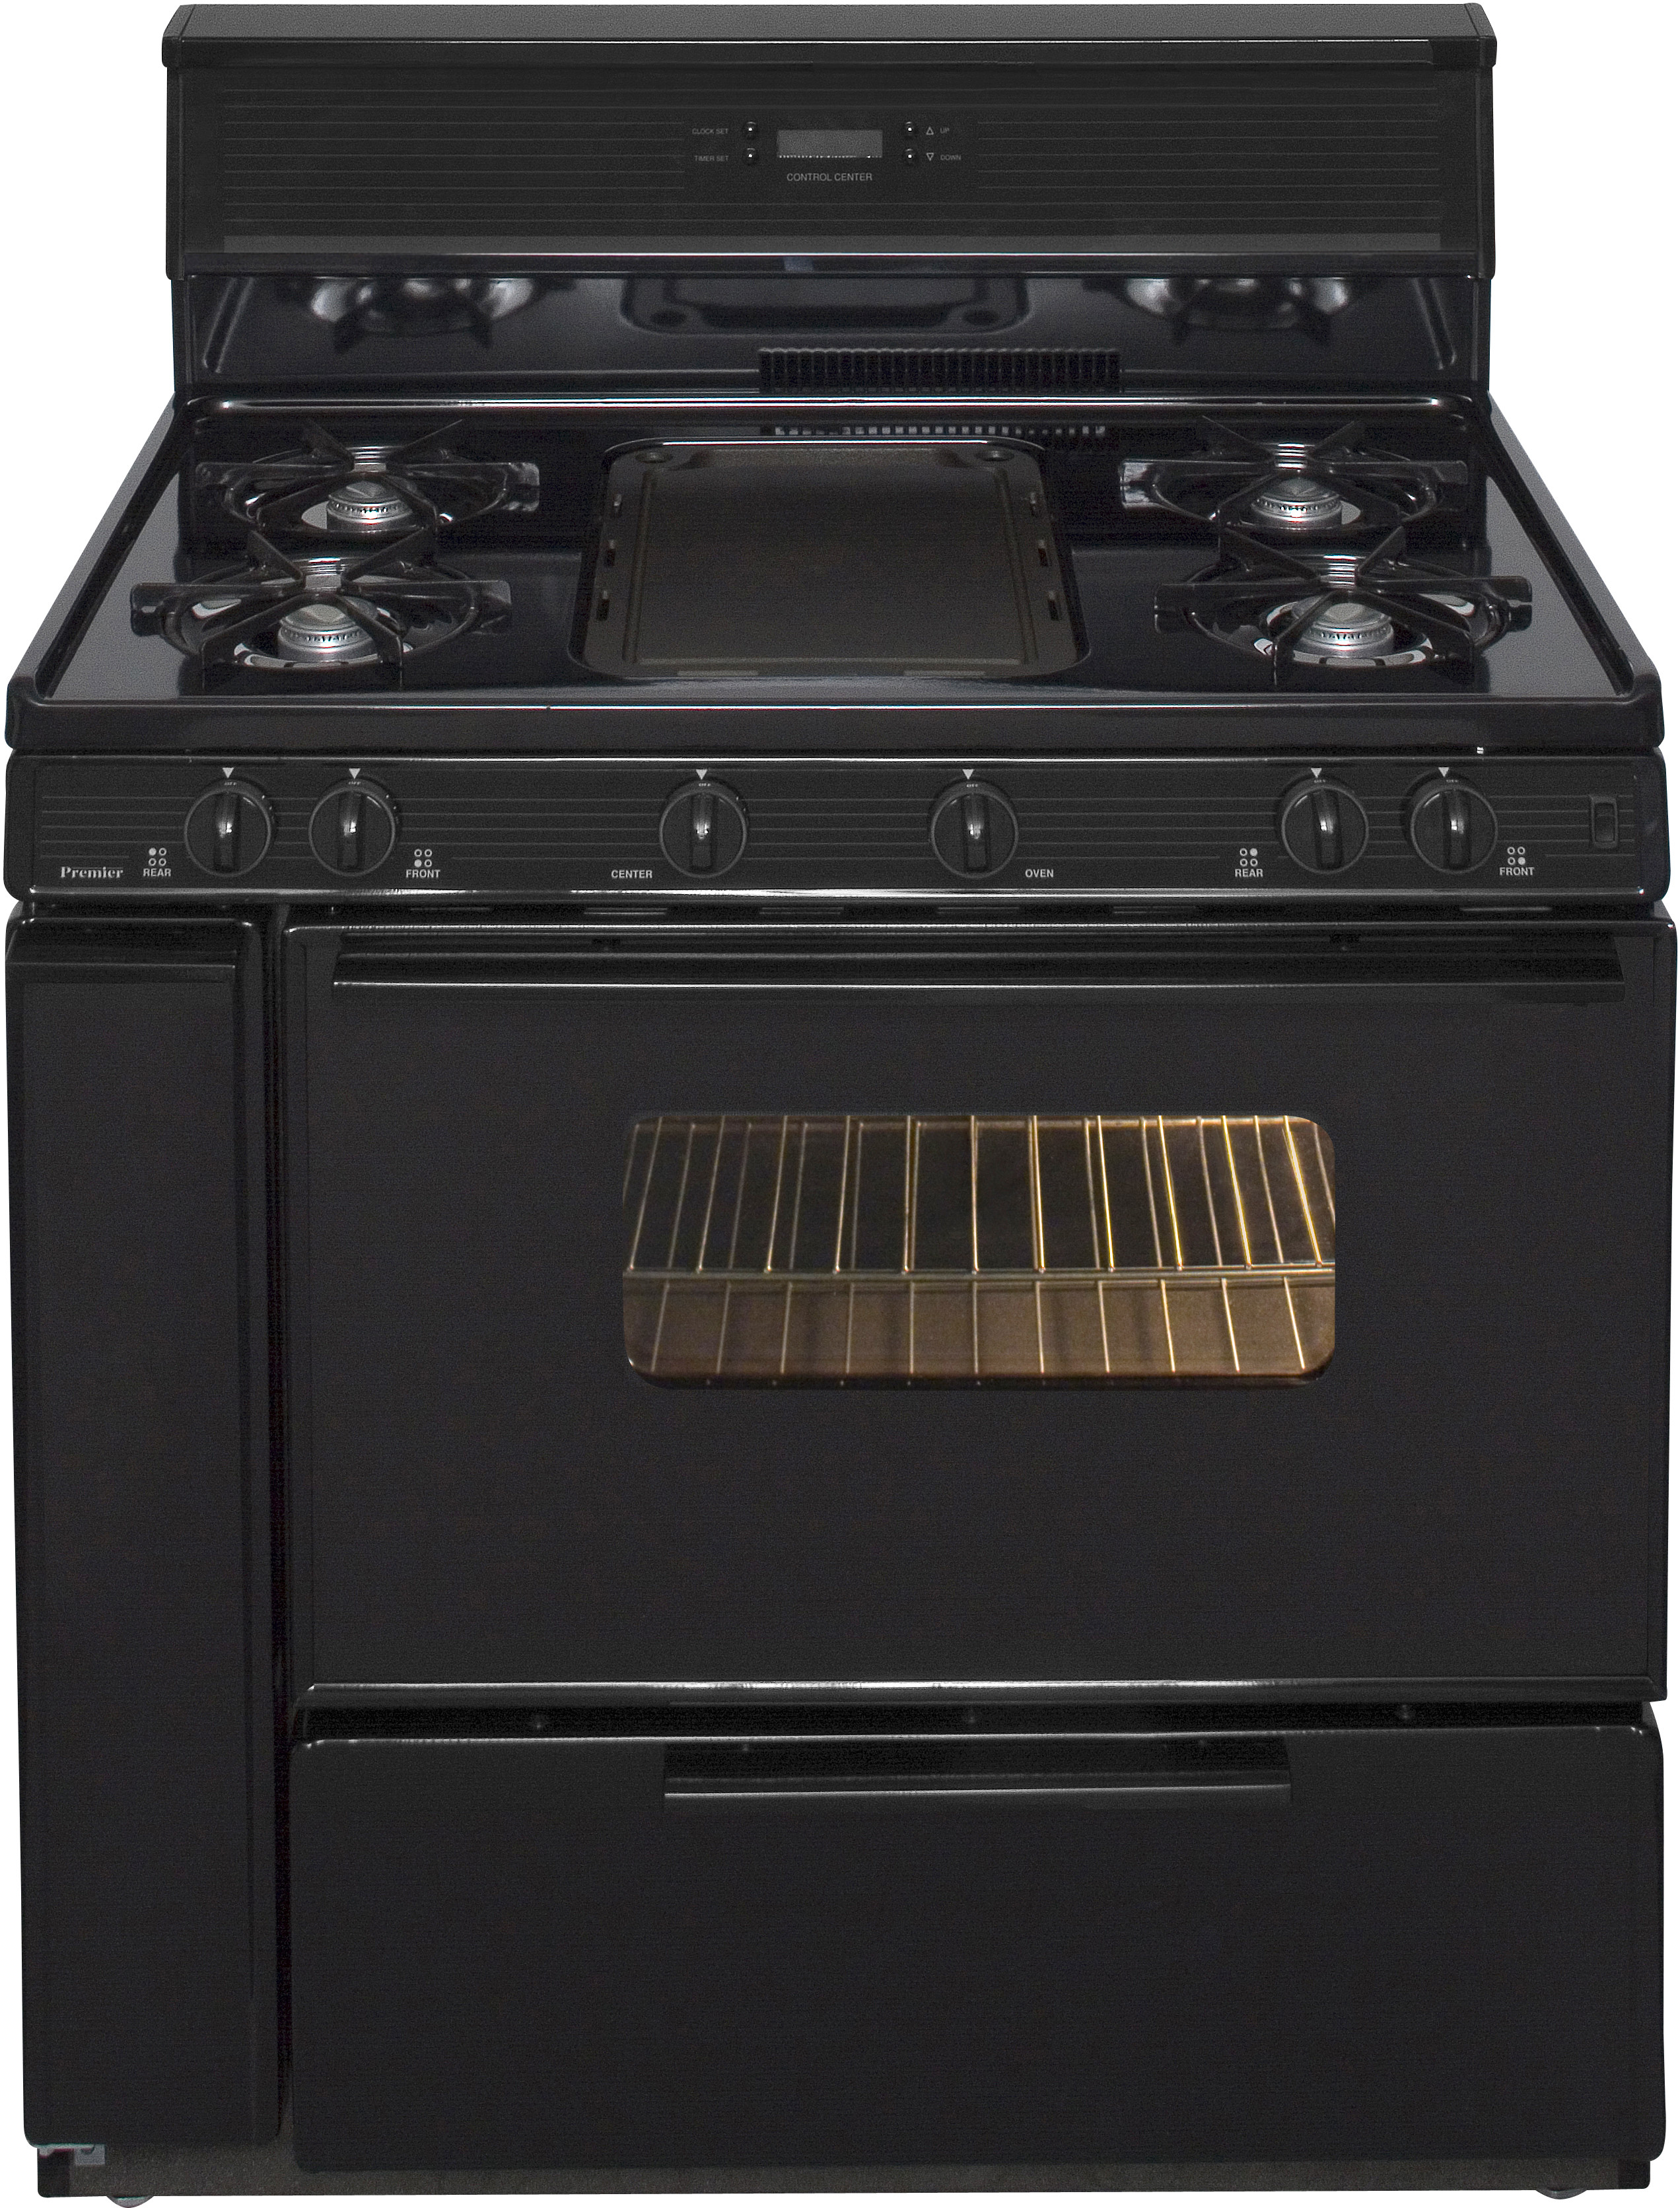 Side by side double oven cost - Side By Side Double Oven Cost 57